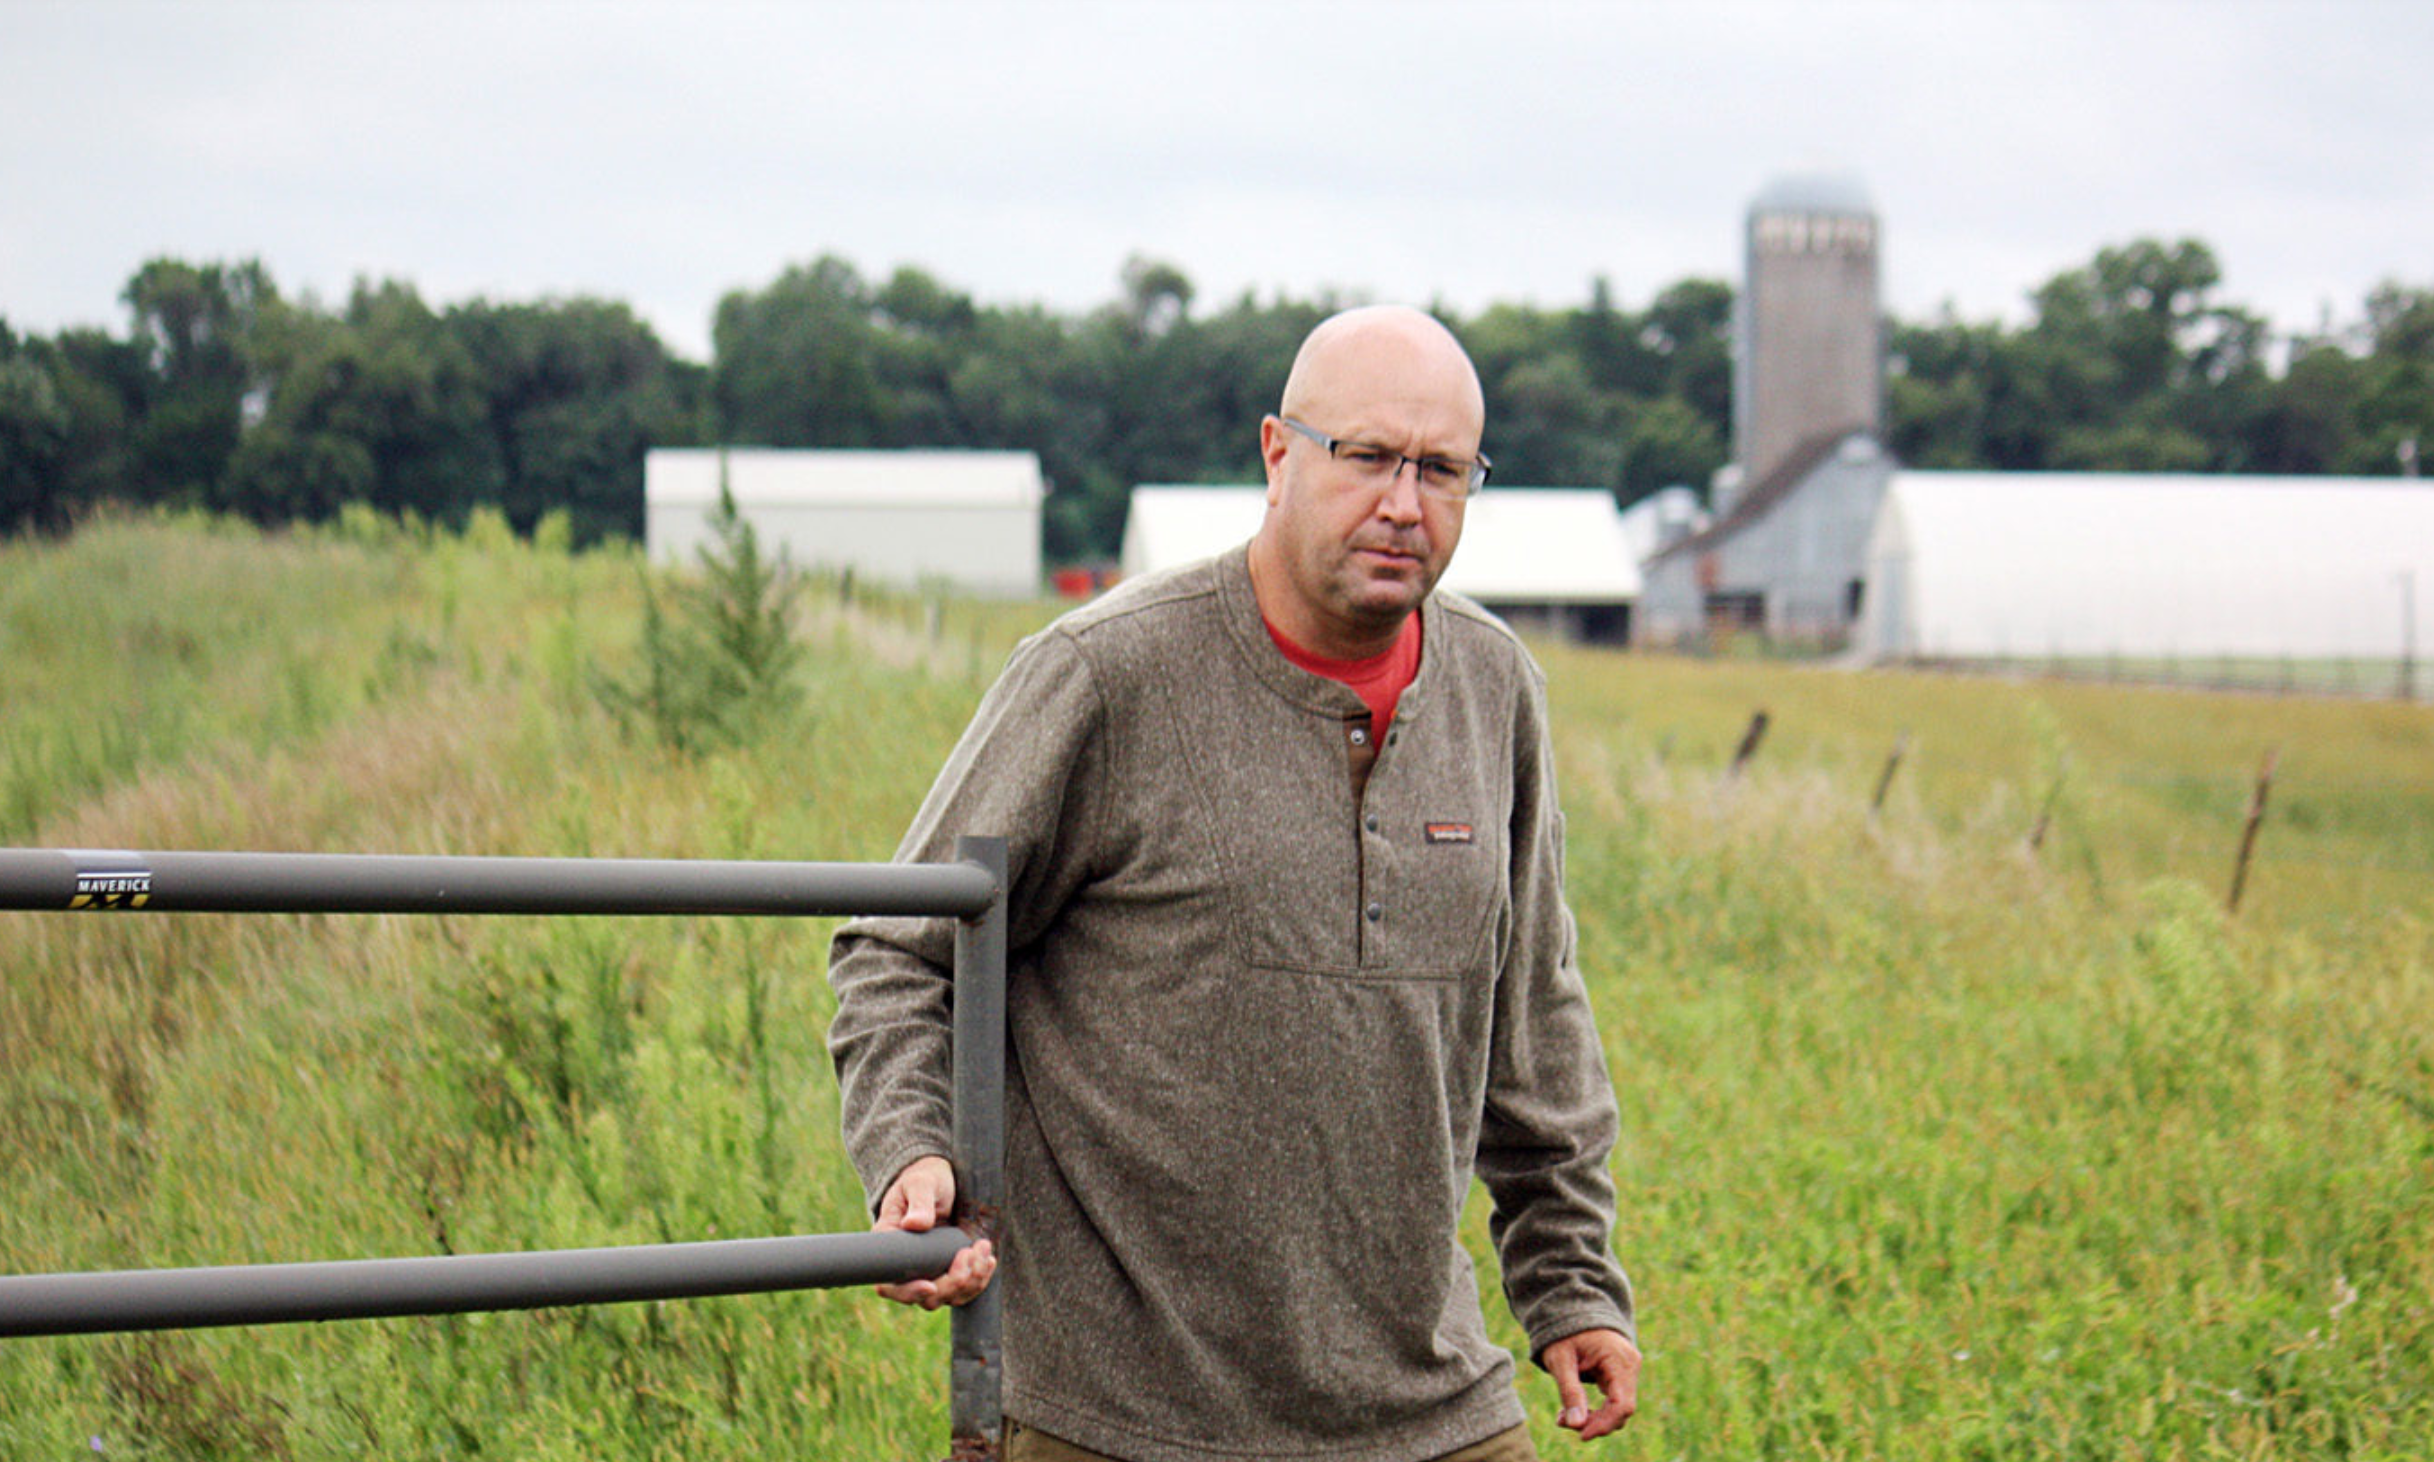 A SOIL JUNKIE EXPLAINS NO-TILL PRACTICES FOR REGENERATIVE AGRICULTURE